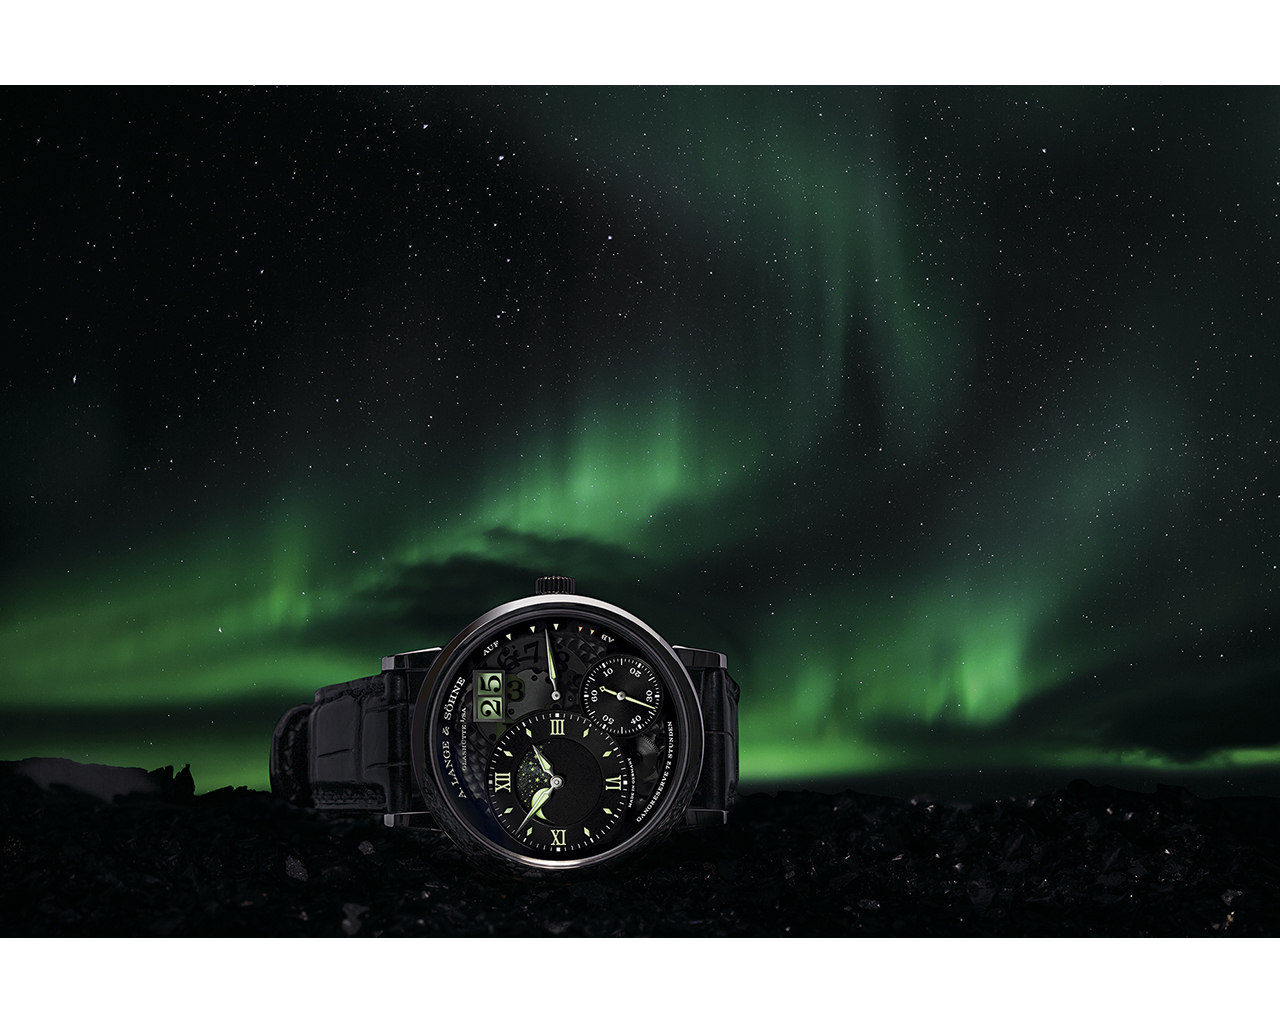 ALS_NorthernLights_1_139_035_web